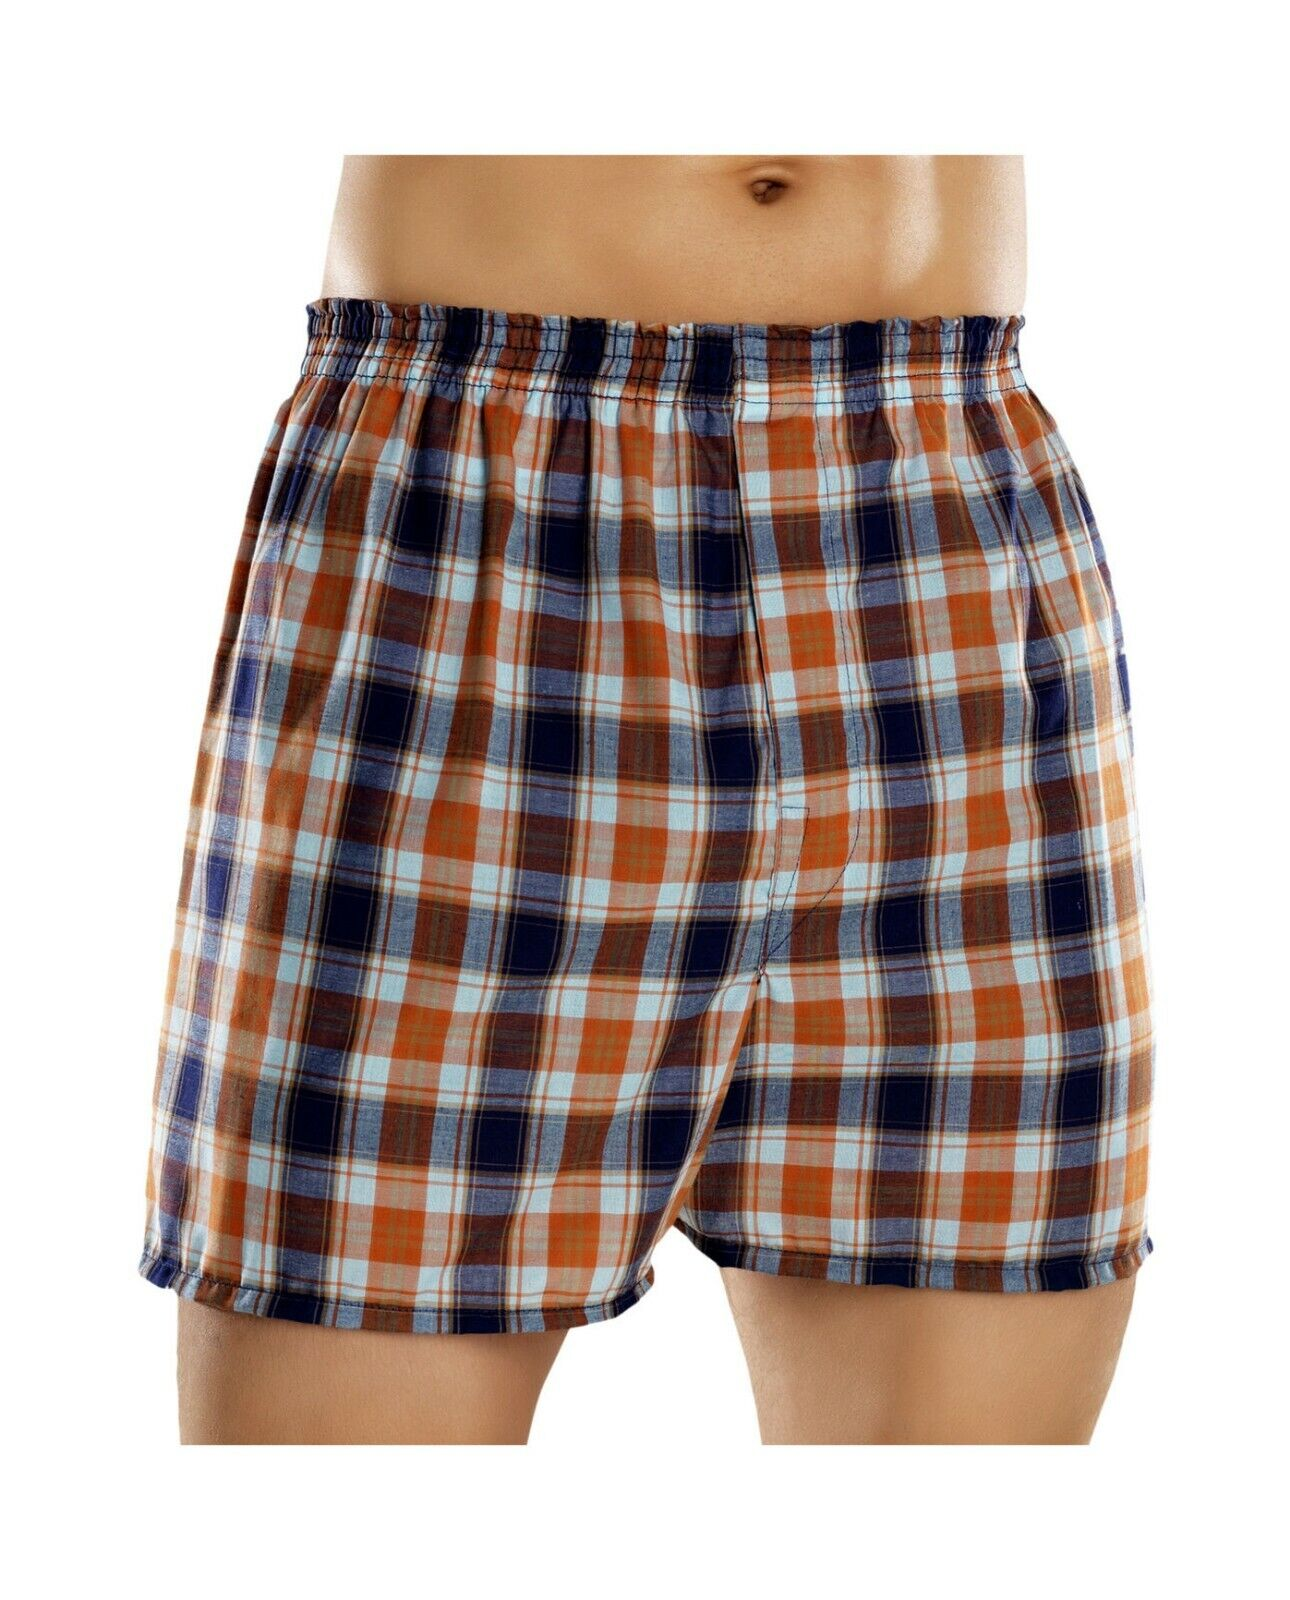 Fruit of the Loom Men's Plaid Woven Boxers Big Sizes (Pack 5) 2x-3x Clothing, Shoes & Accessories